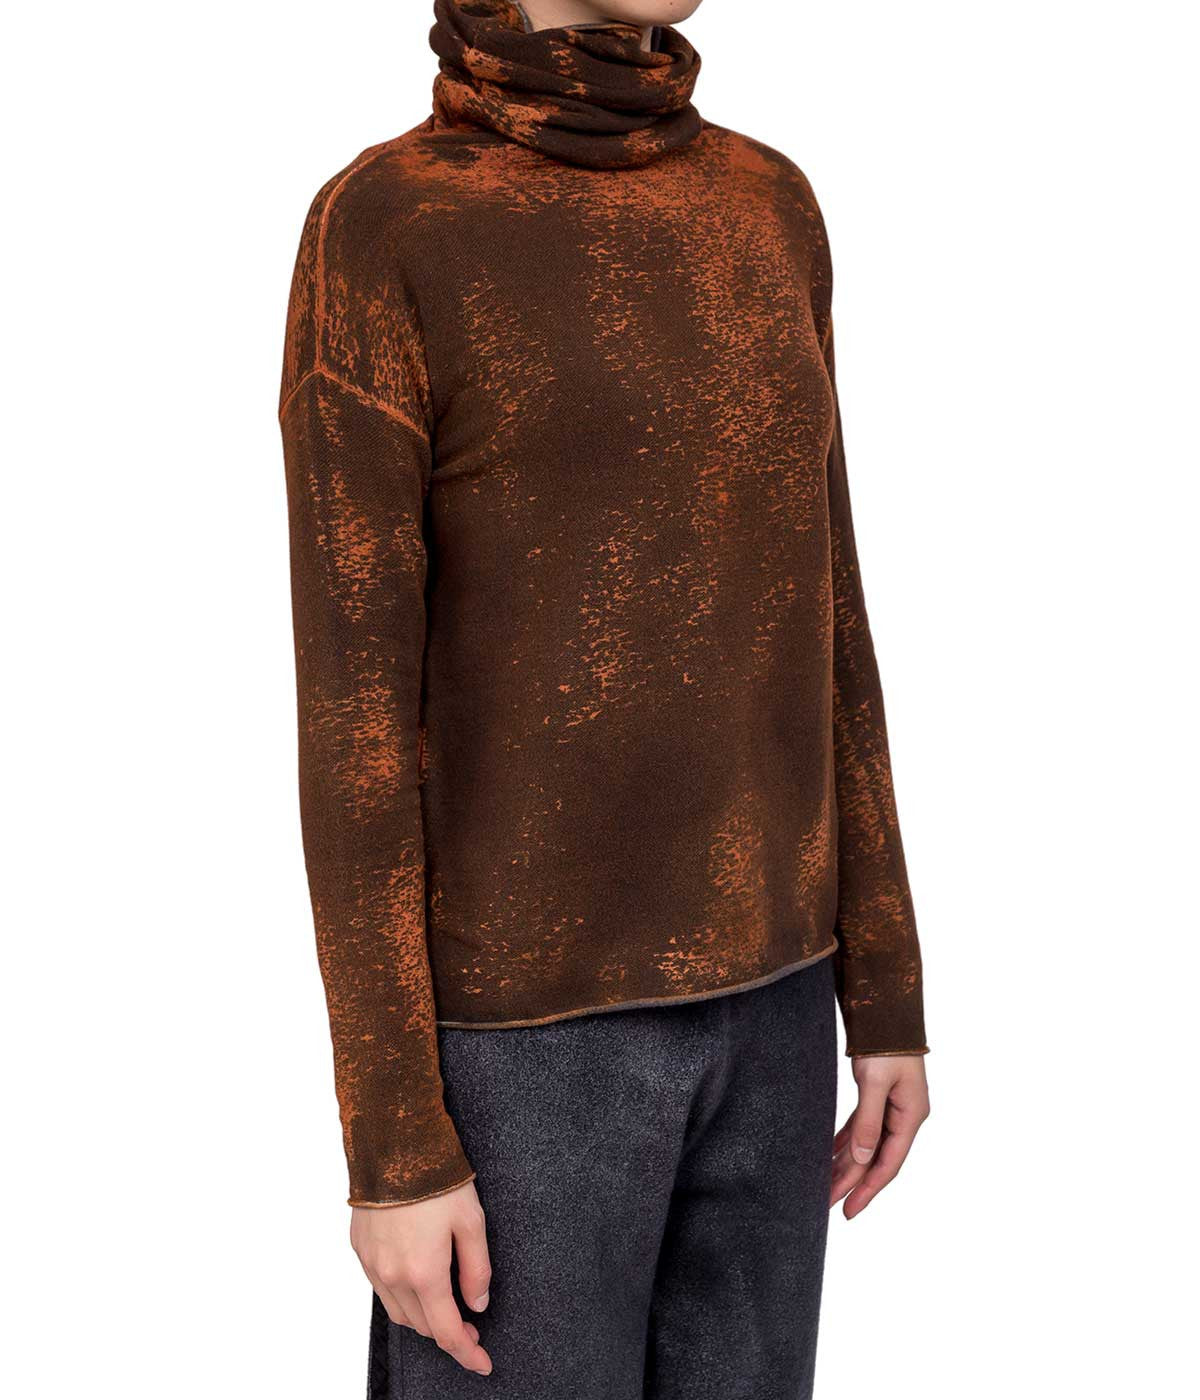 Mixed Orange Turtleneck Sweatshirt